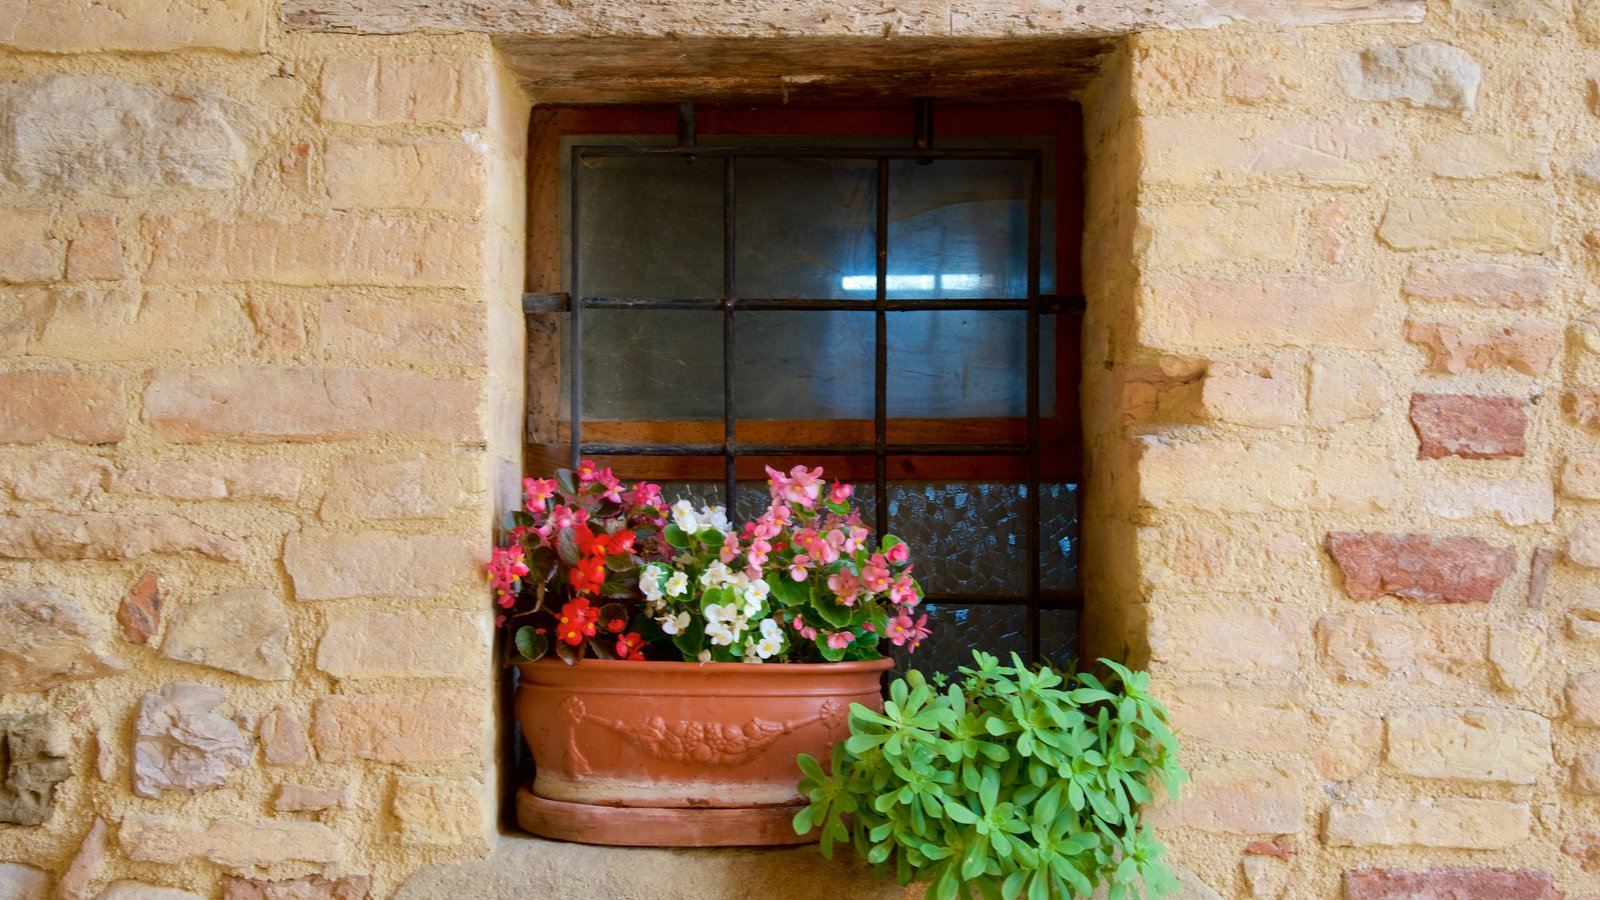 Montefalco which includes heritage elements and flowers